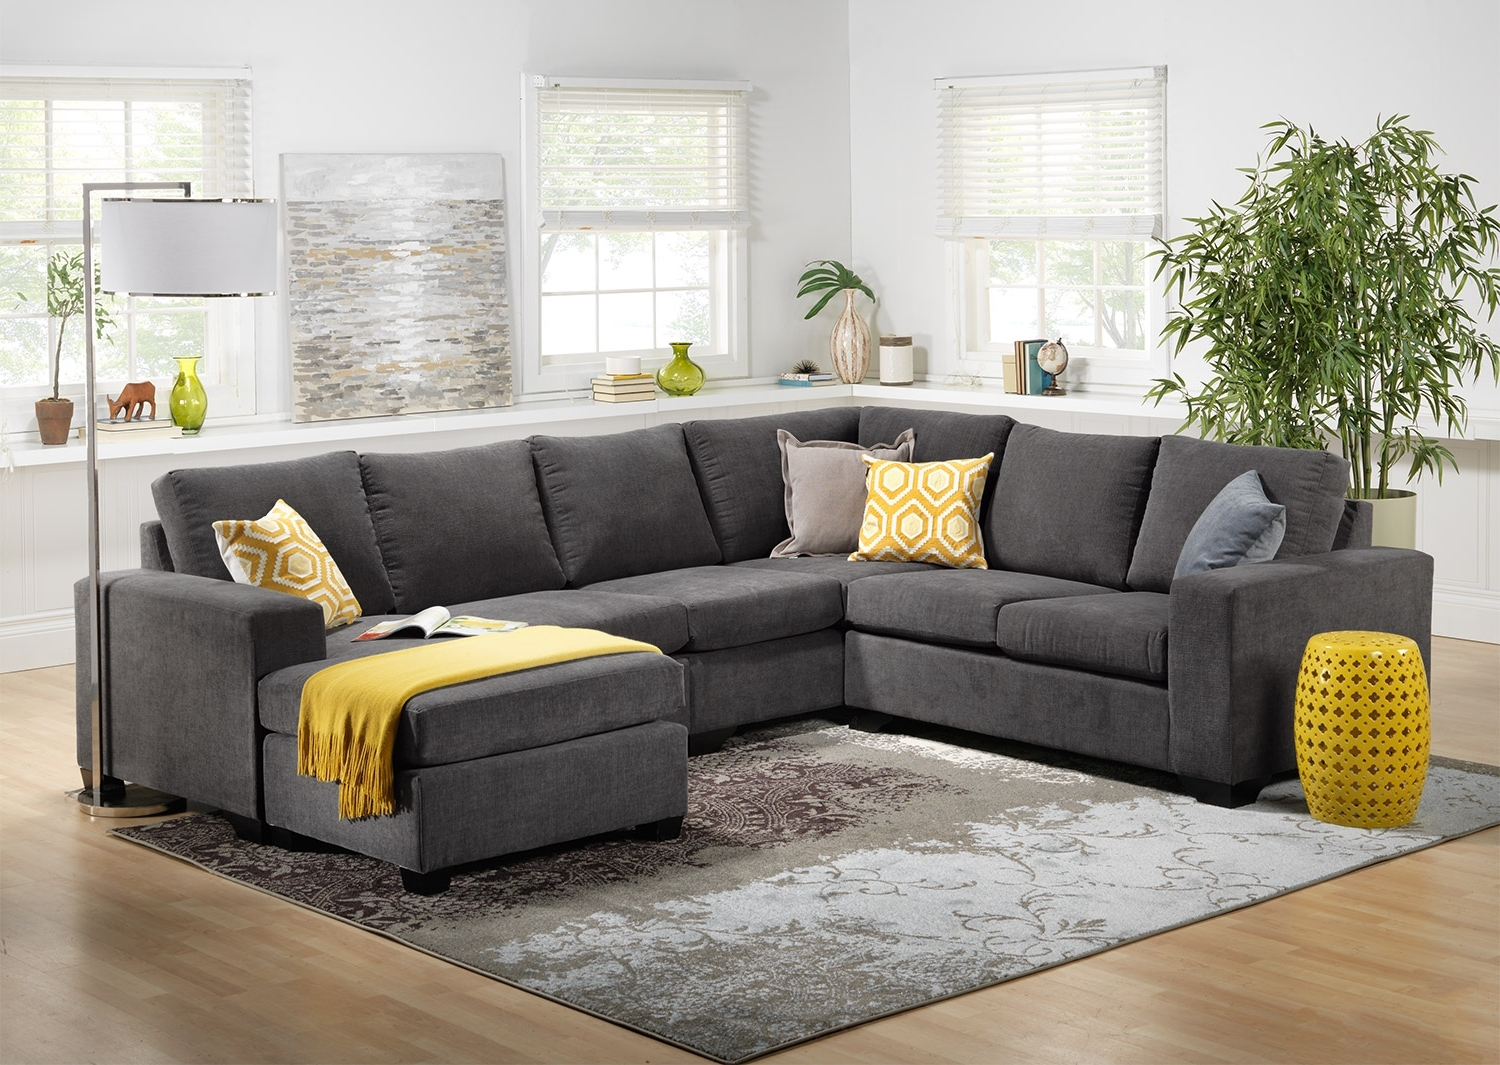 Danielle 3 Piece Sectional With Right Facing Corner Wedge – Grey In Most Up To Date Sectional Sofas At Bc Canada (View 9 of 20)